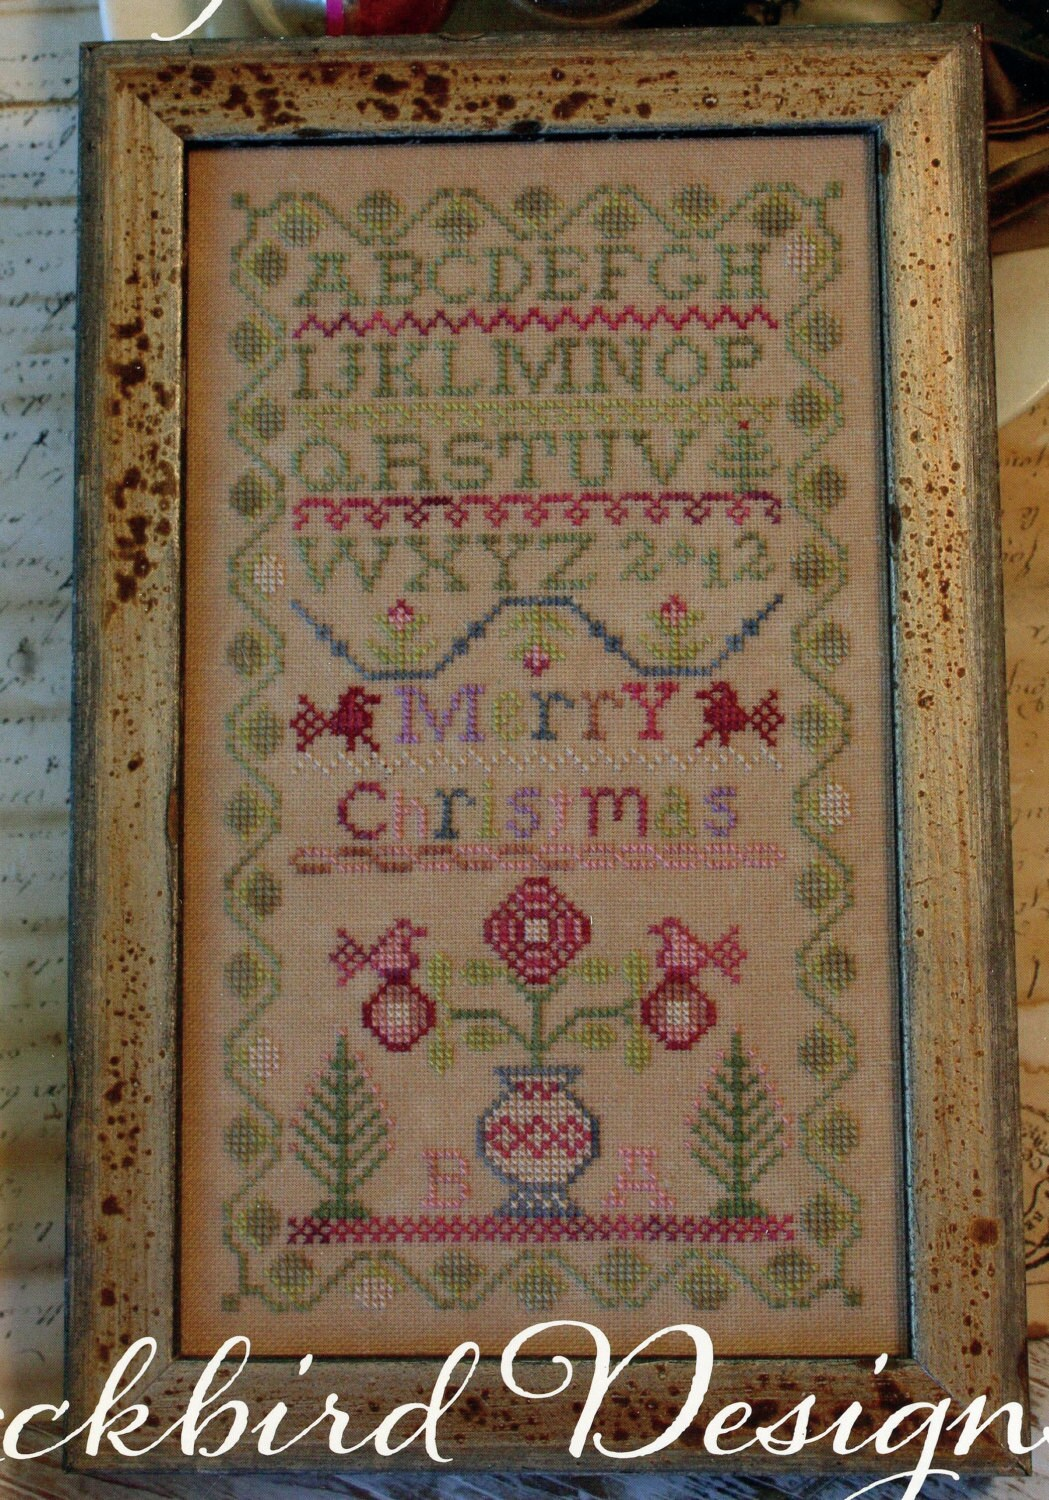 Merry Christmas By Blackbird Designs Counted Cross Stitch